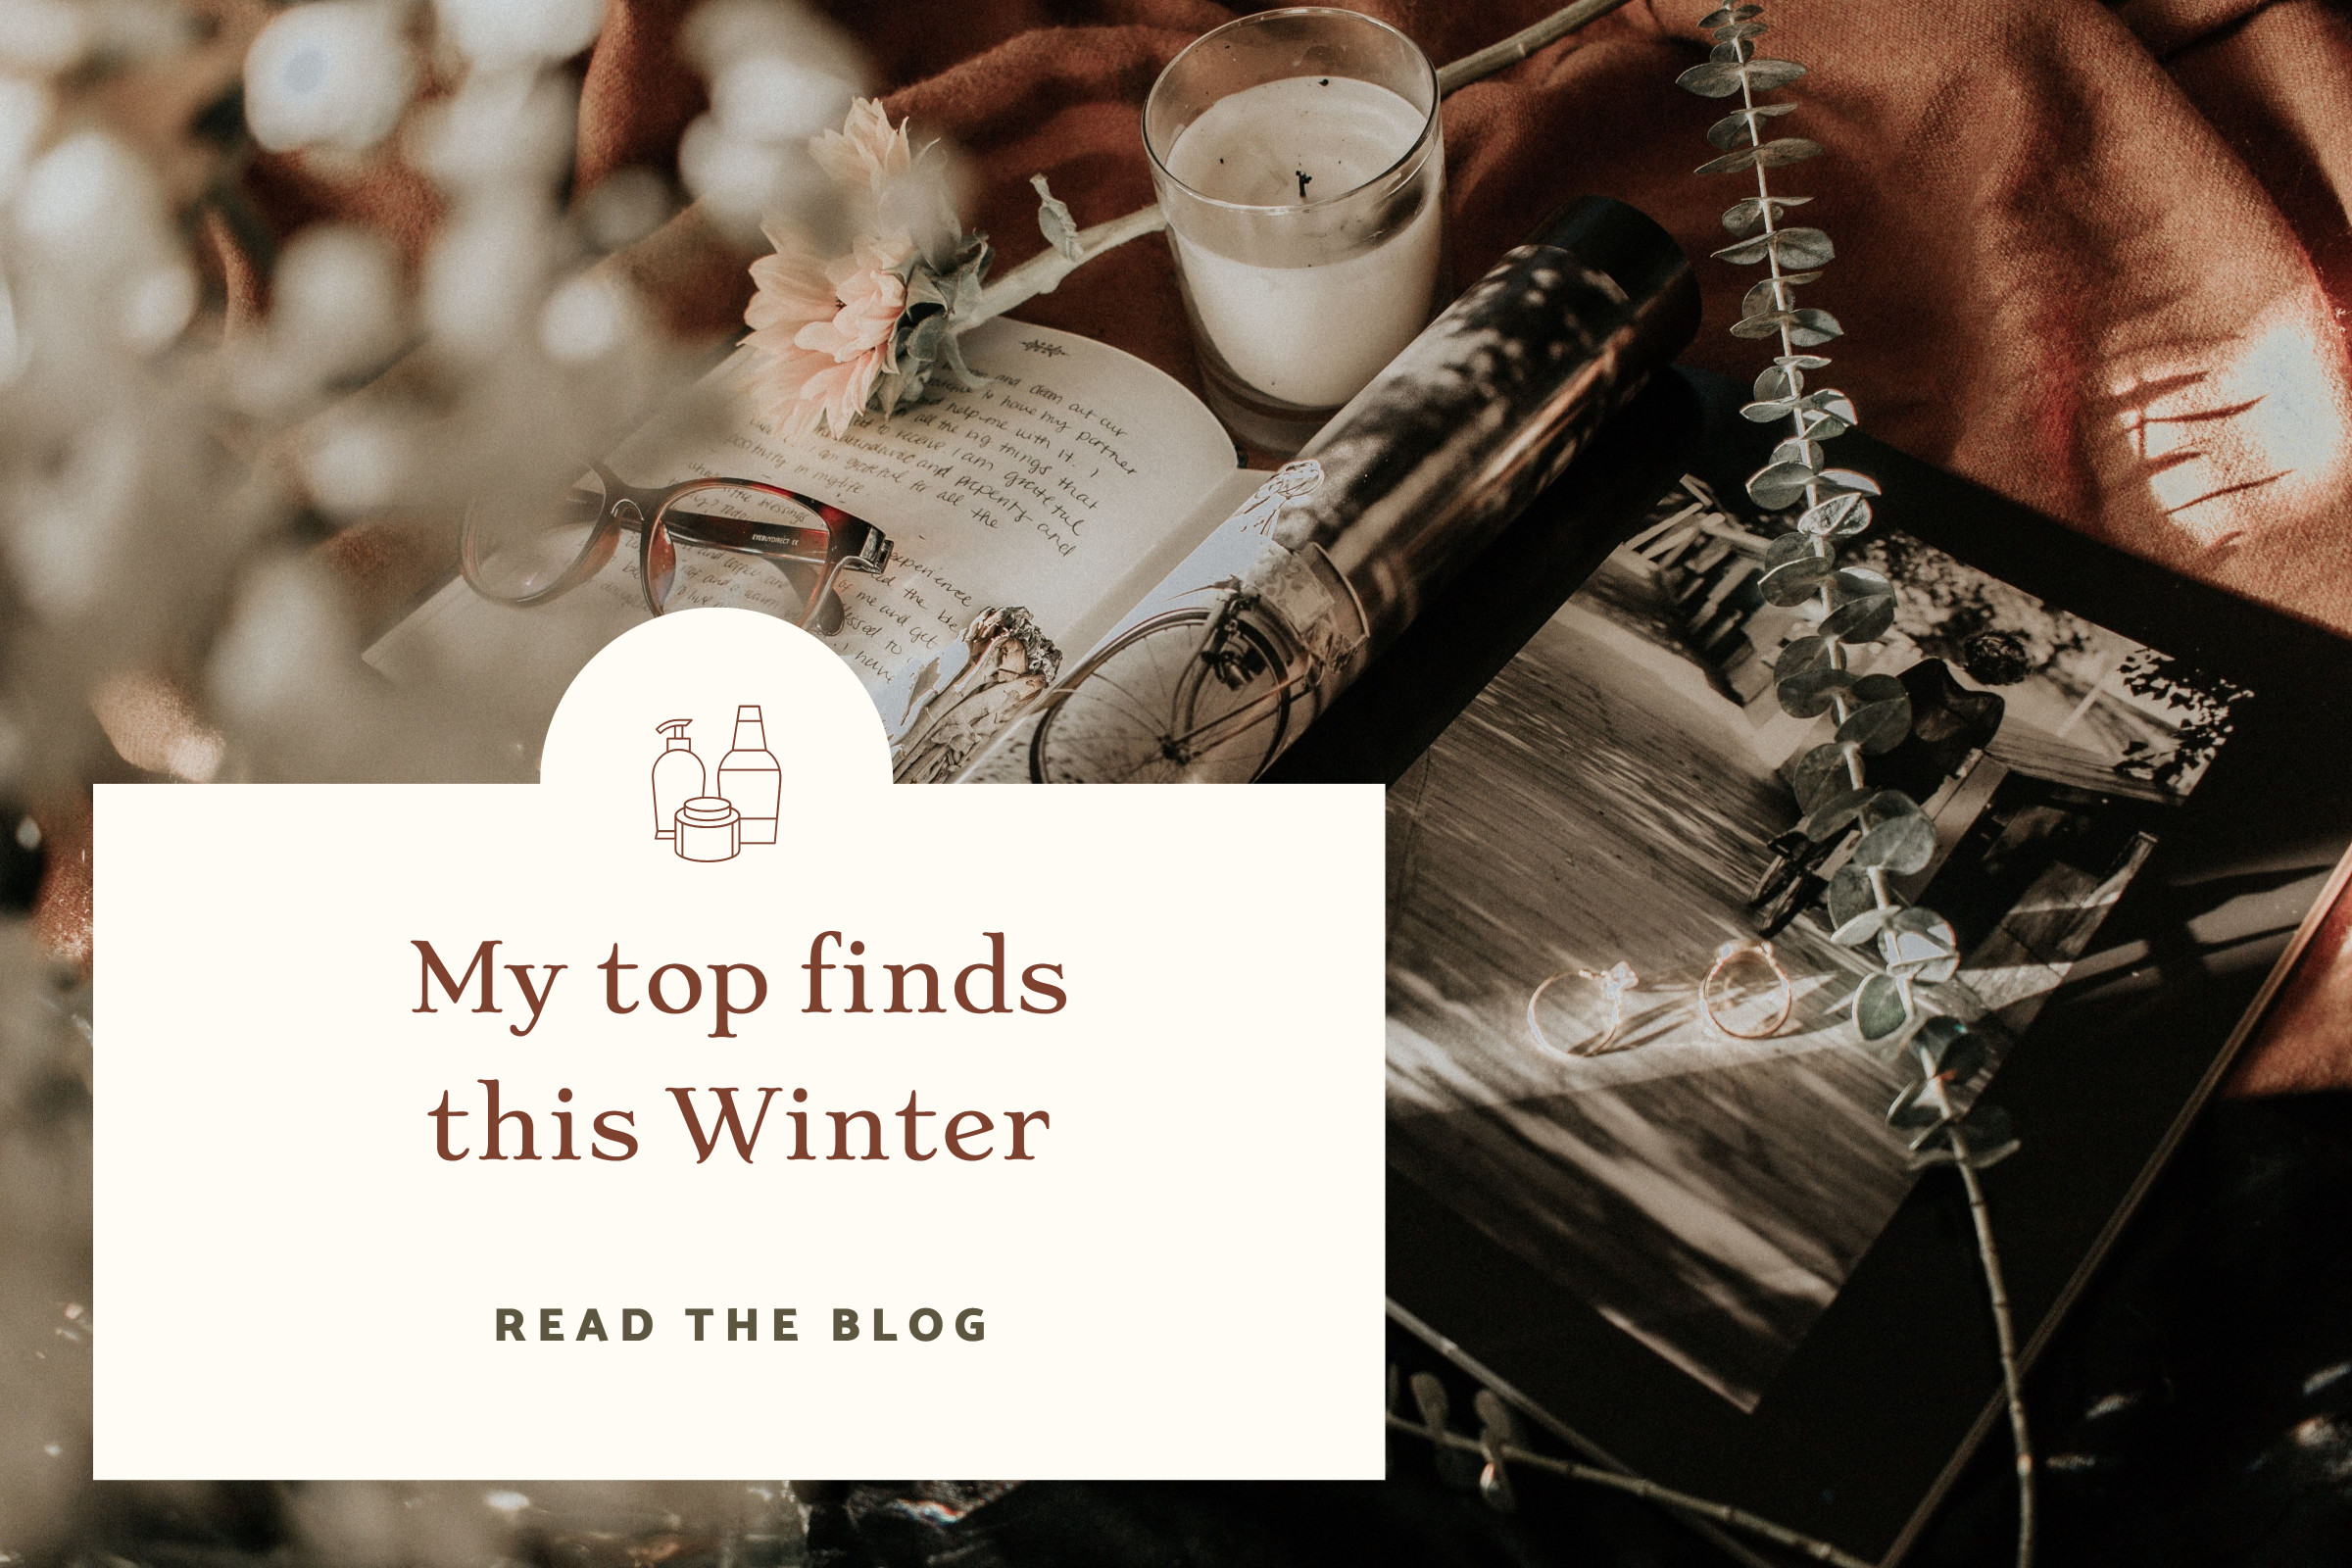 Fashion blogger template design - My top finds this Winter